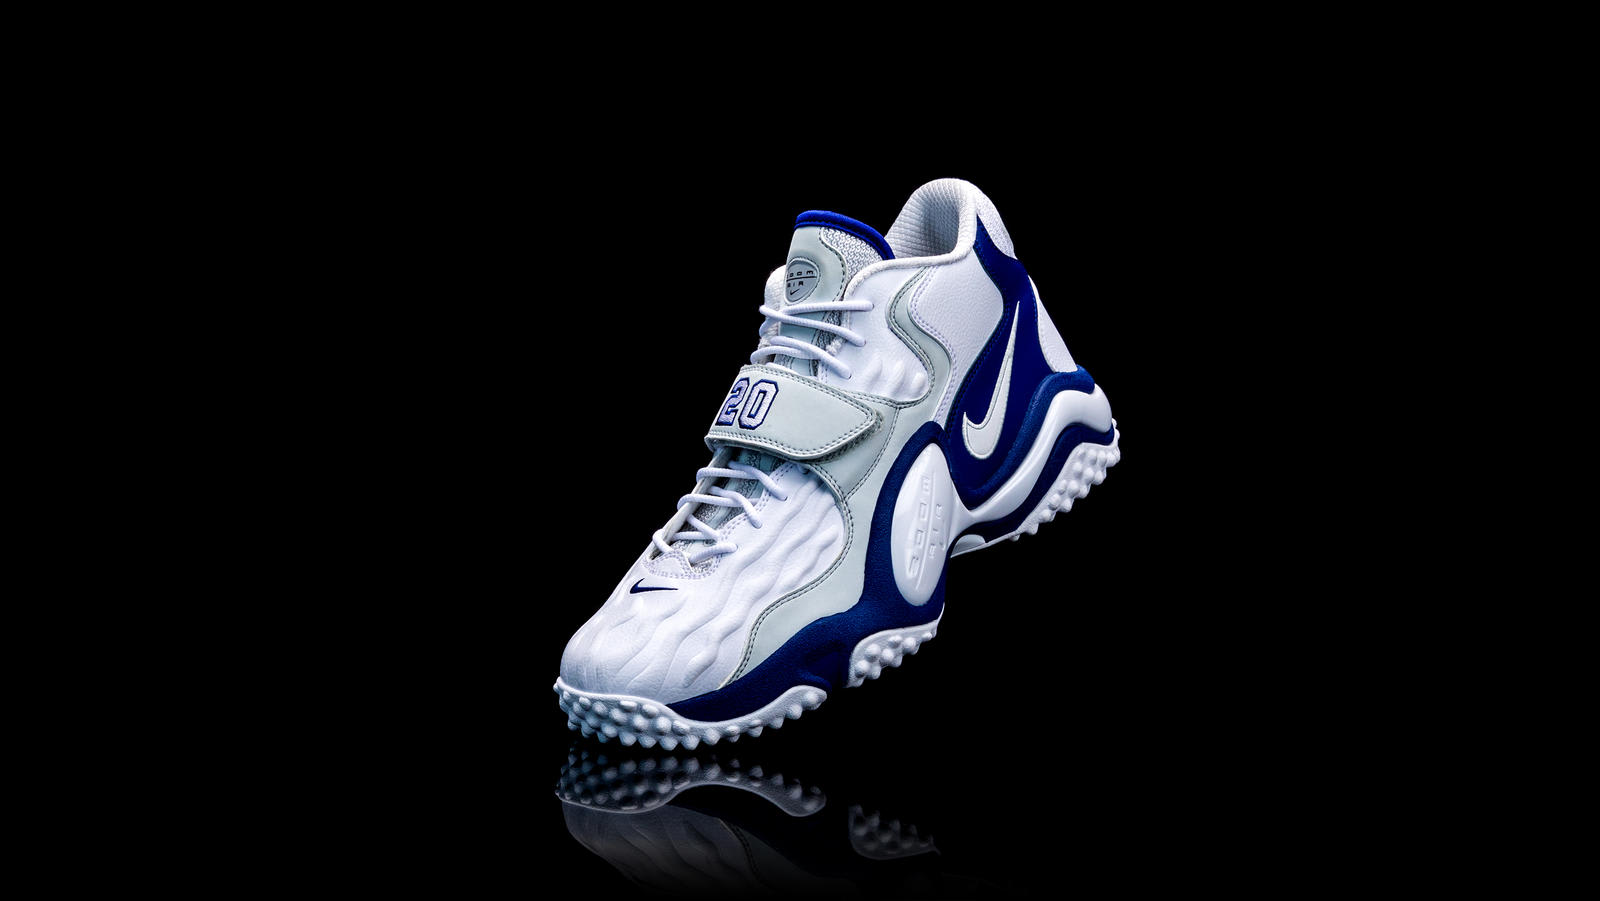 Nike Air Zoom Turf Jet 97 'Barry Sanders' (Left Lateral)